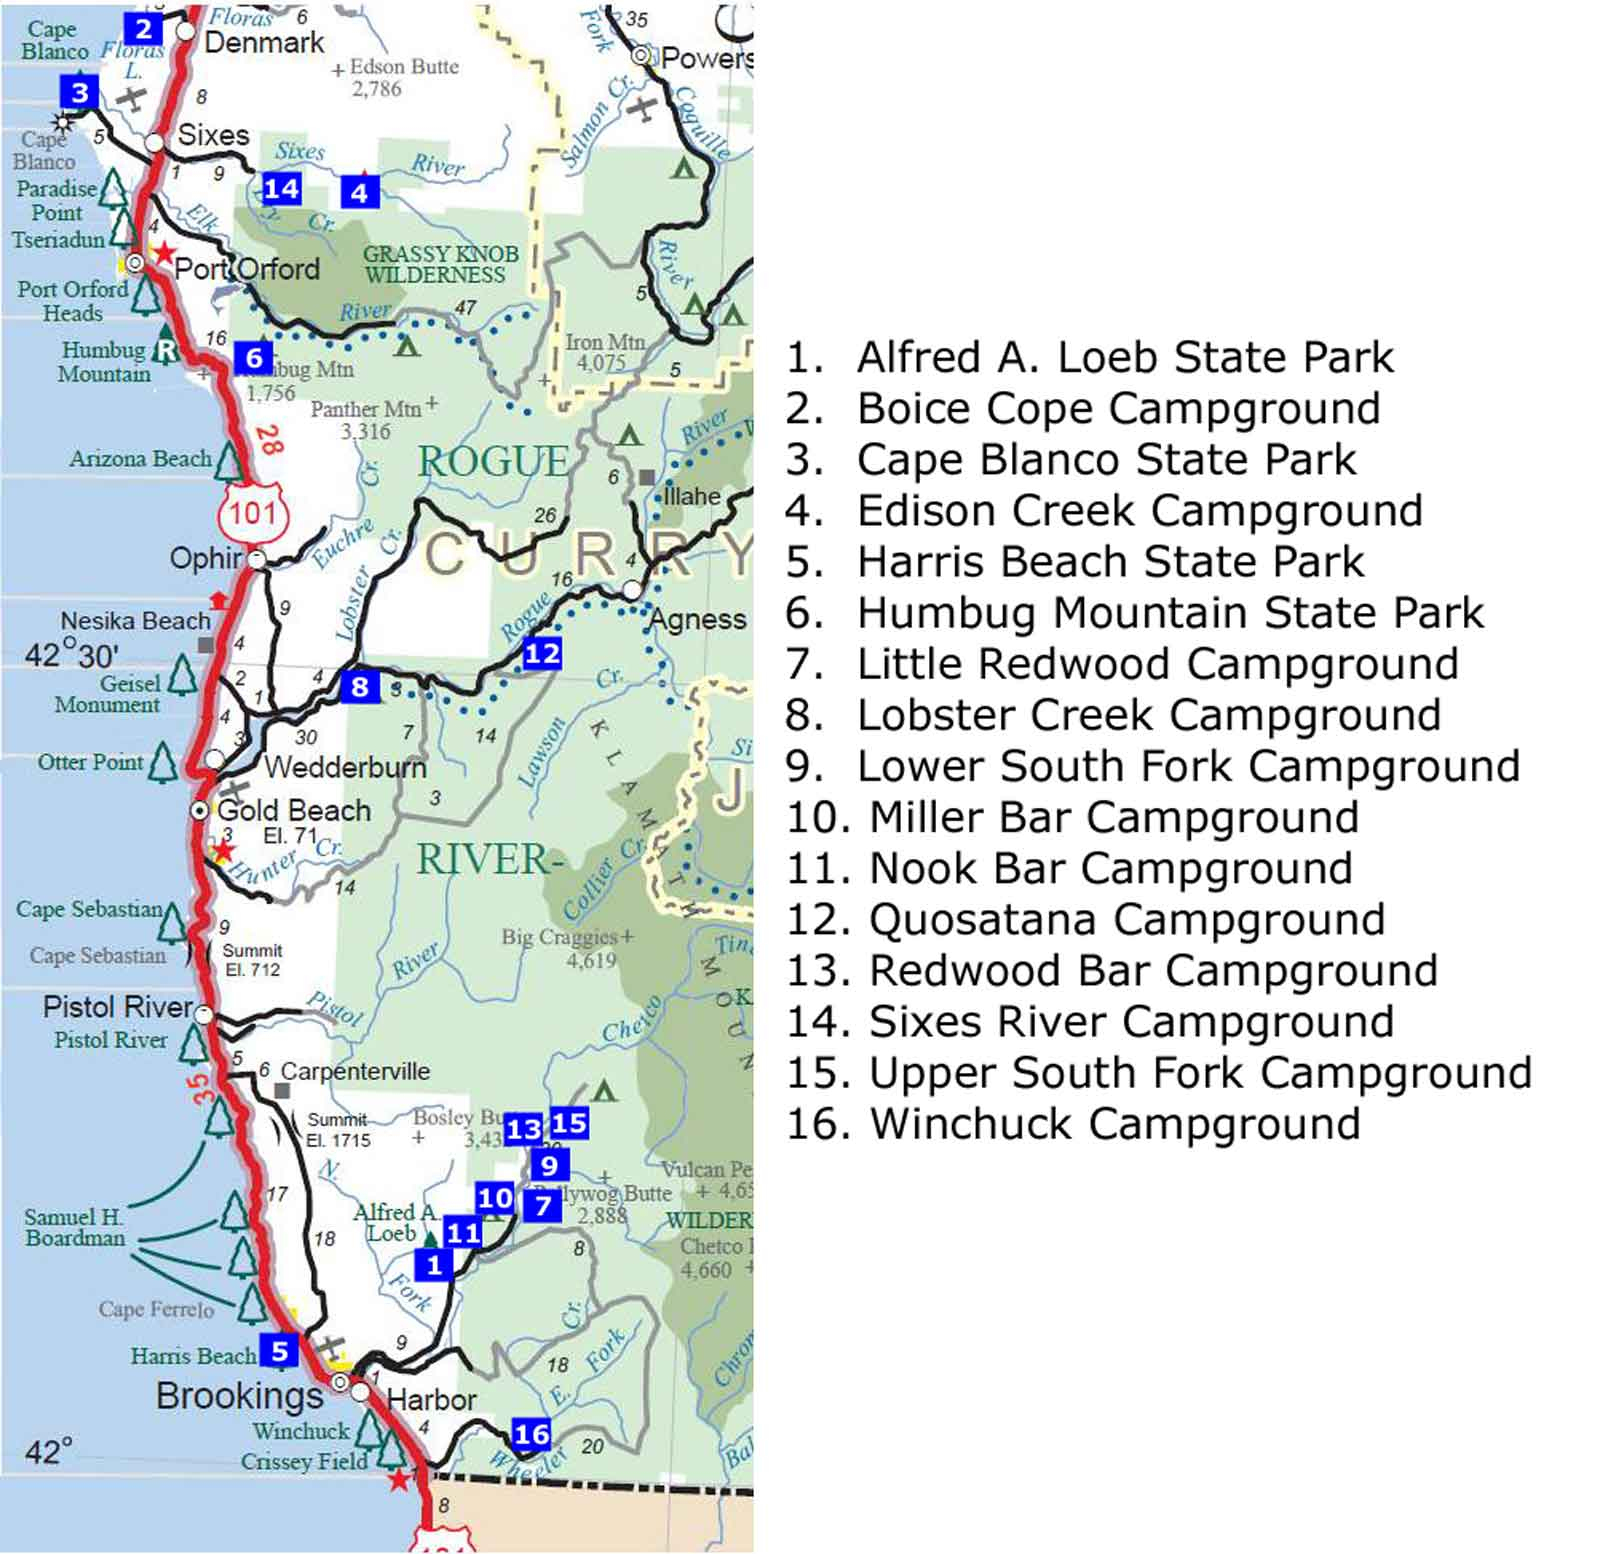 California State Park Camping Map - Klipy - California State Campgrounds Map